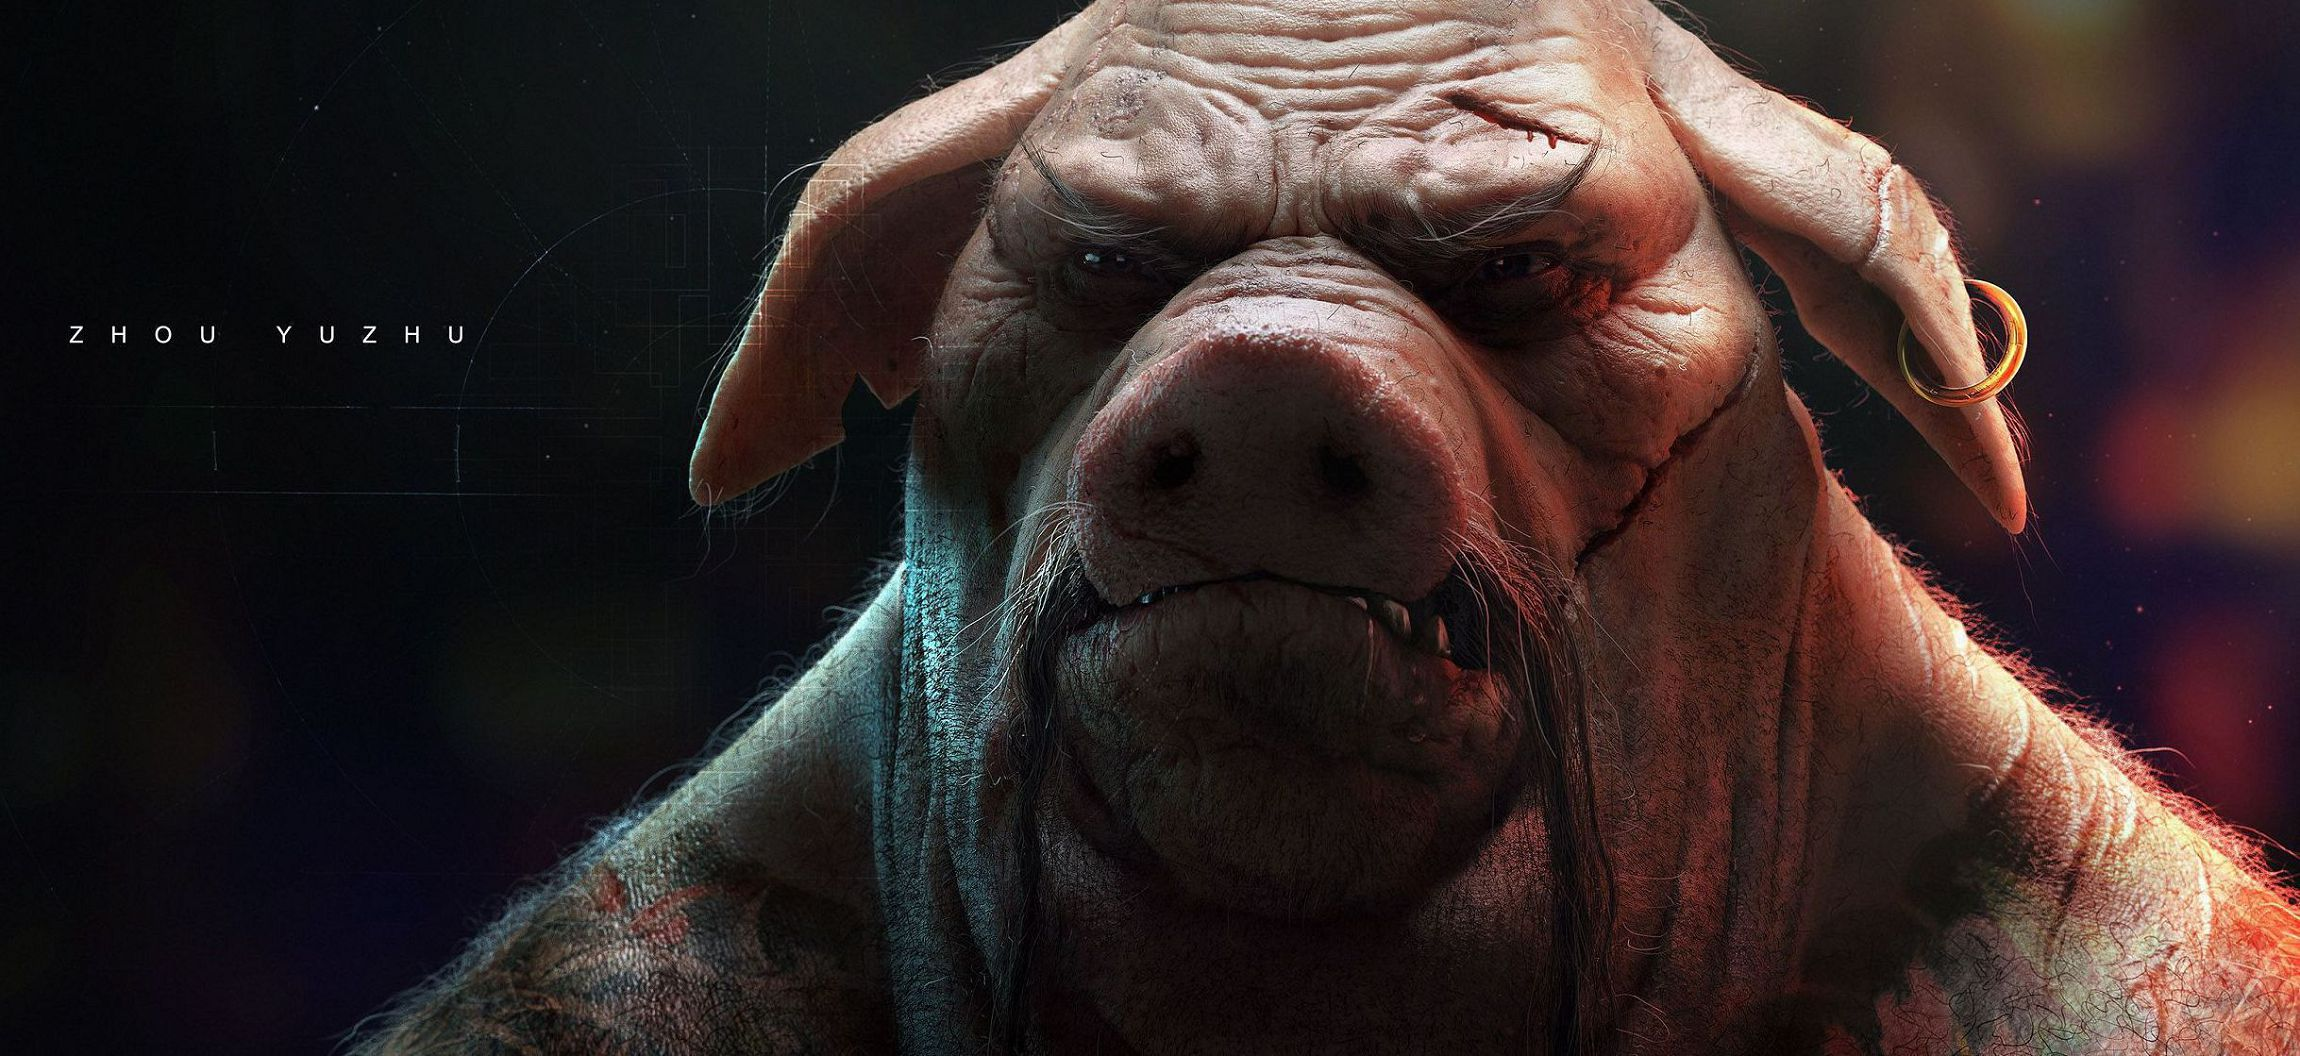 Beyond Good Evil 2 Pictures